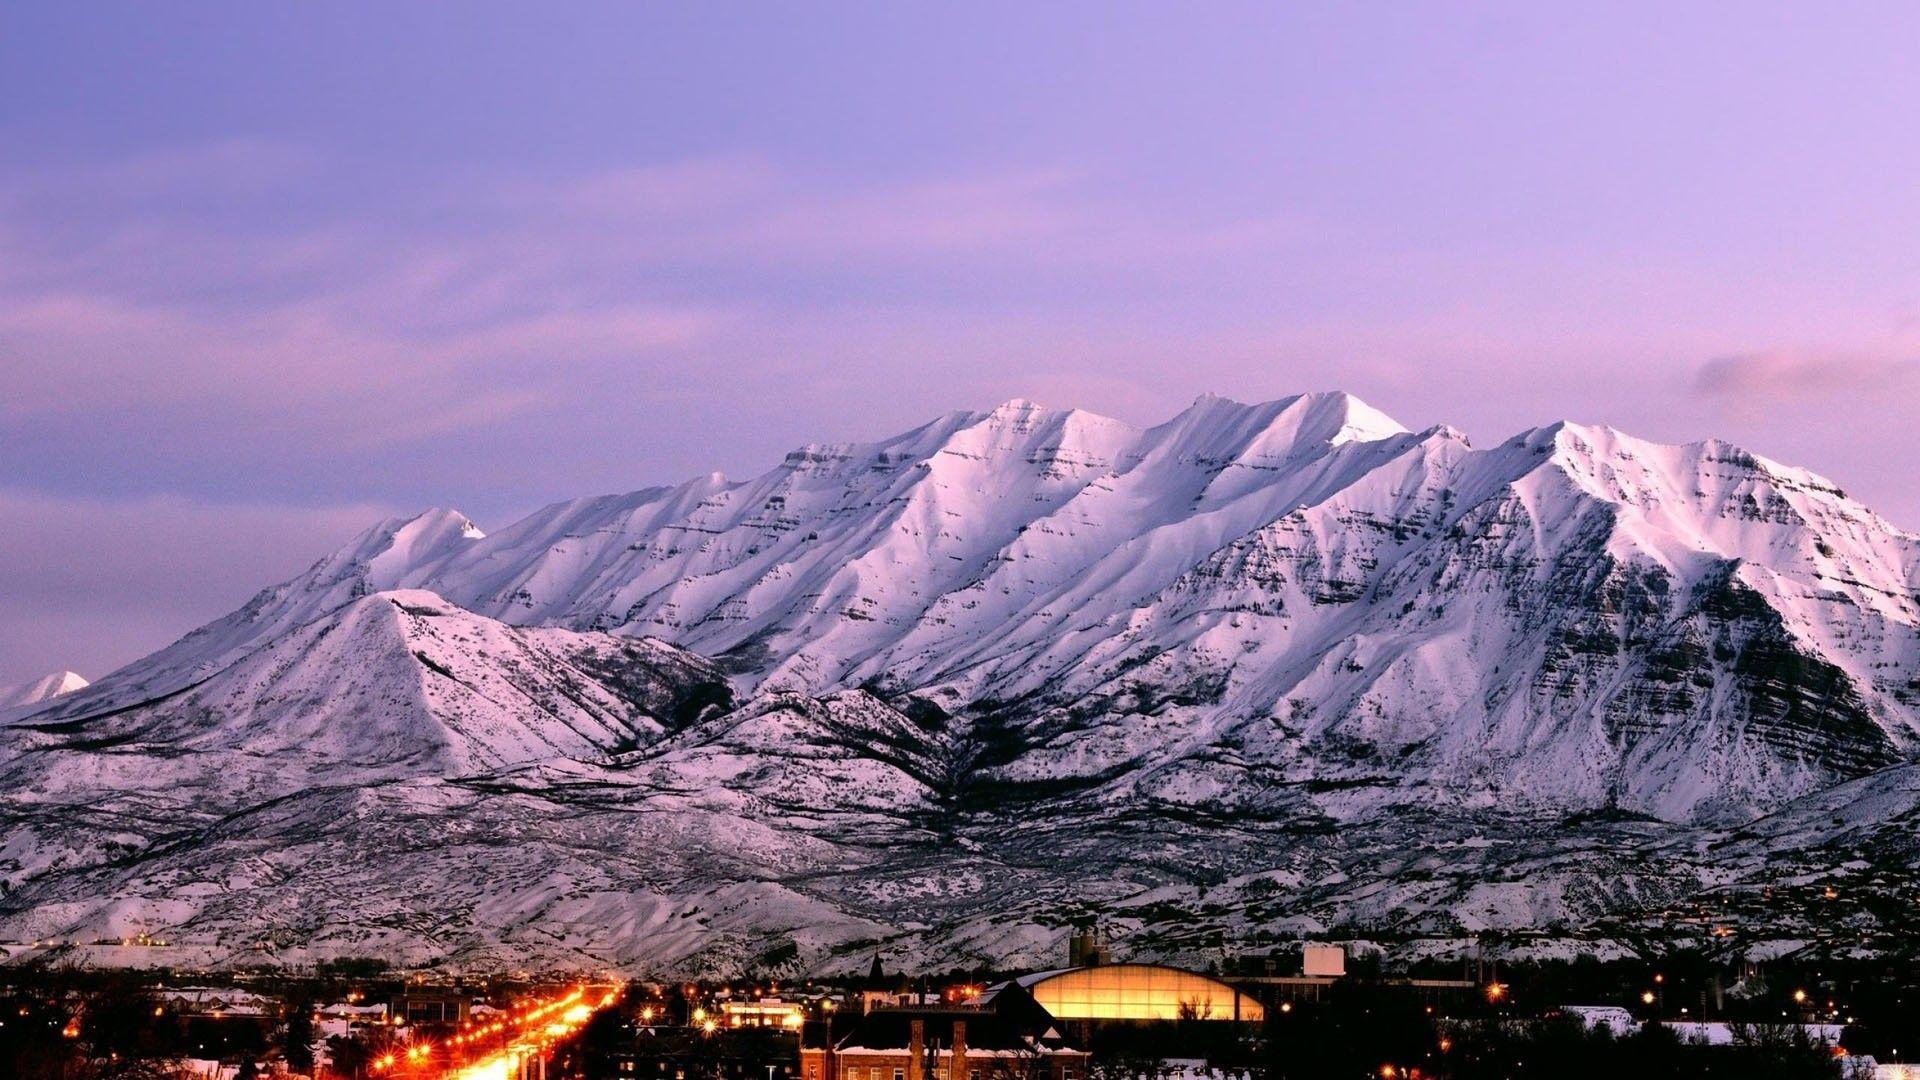 Mountain Utah Ranges Landscape Scenic Wallpapers High Resolution ...